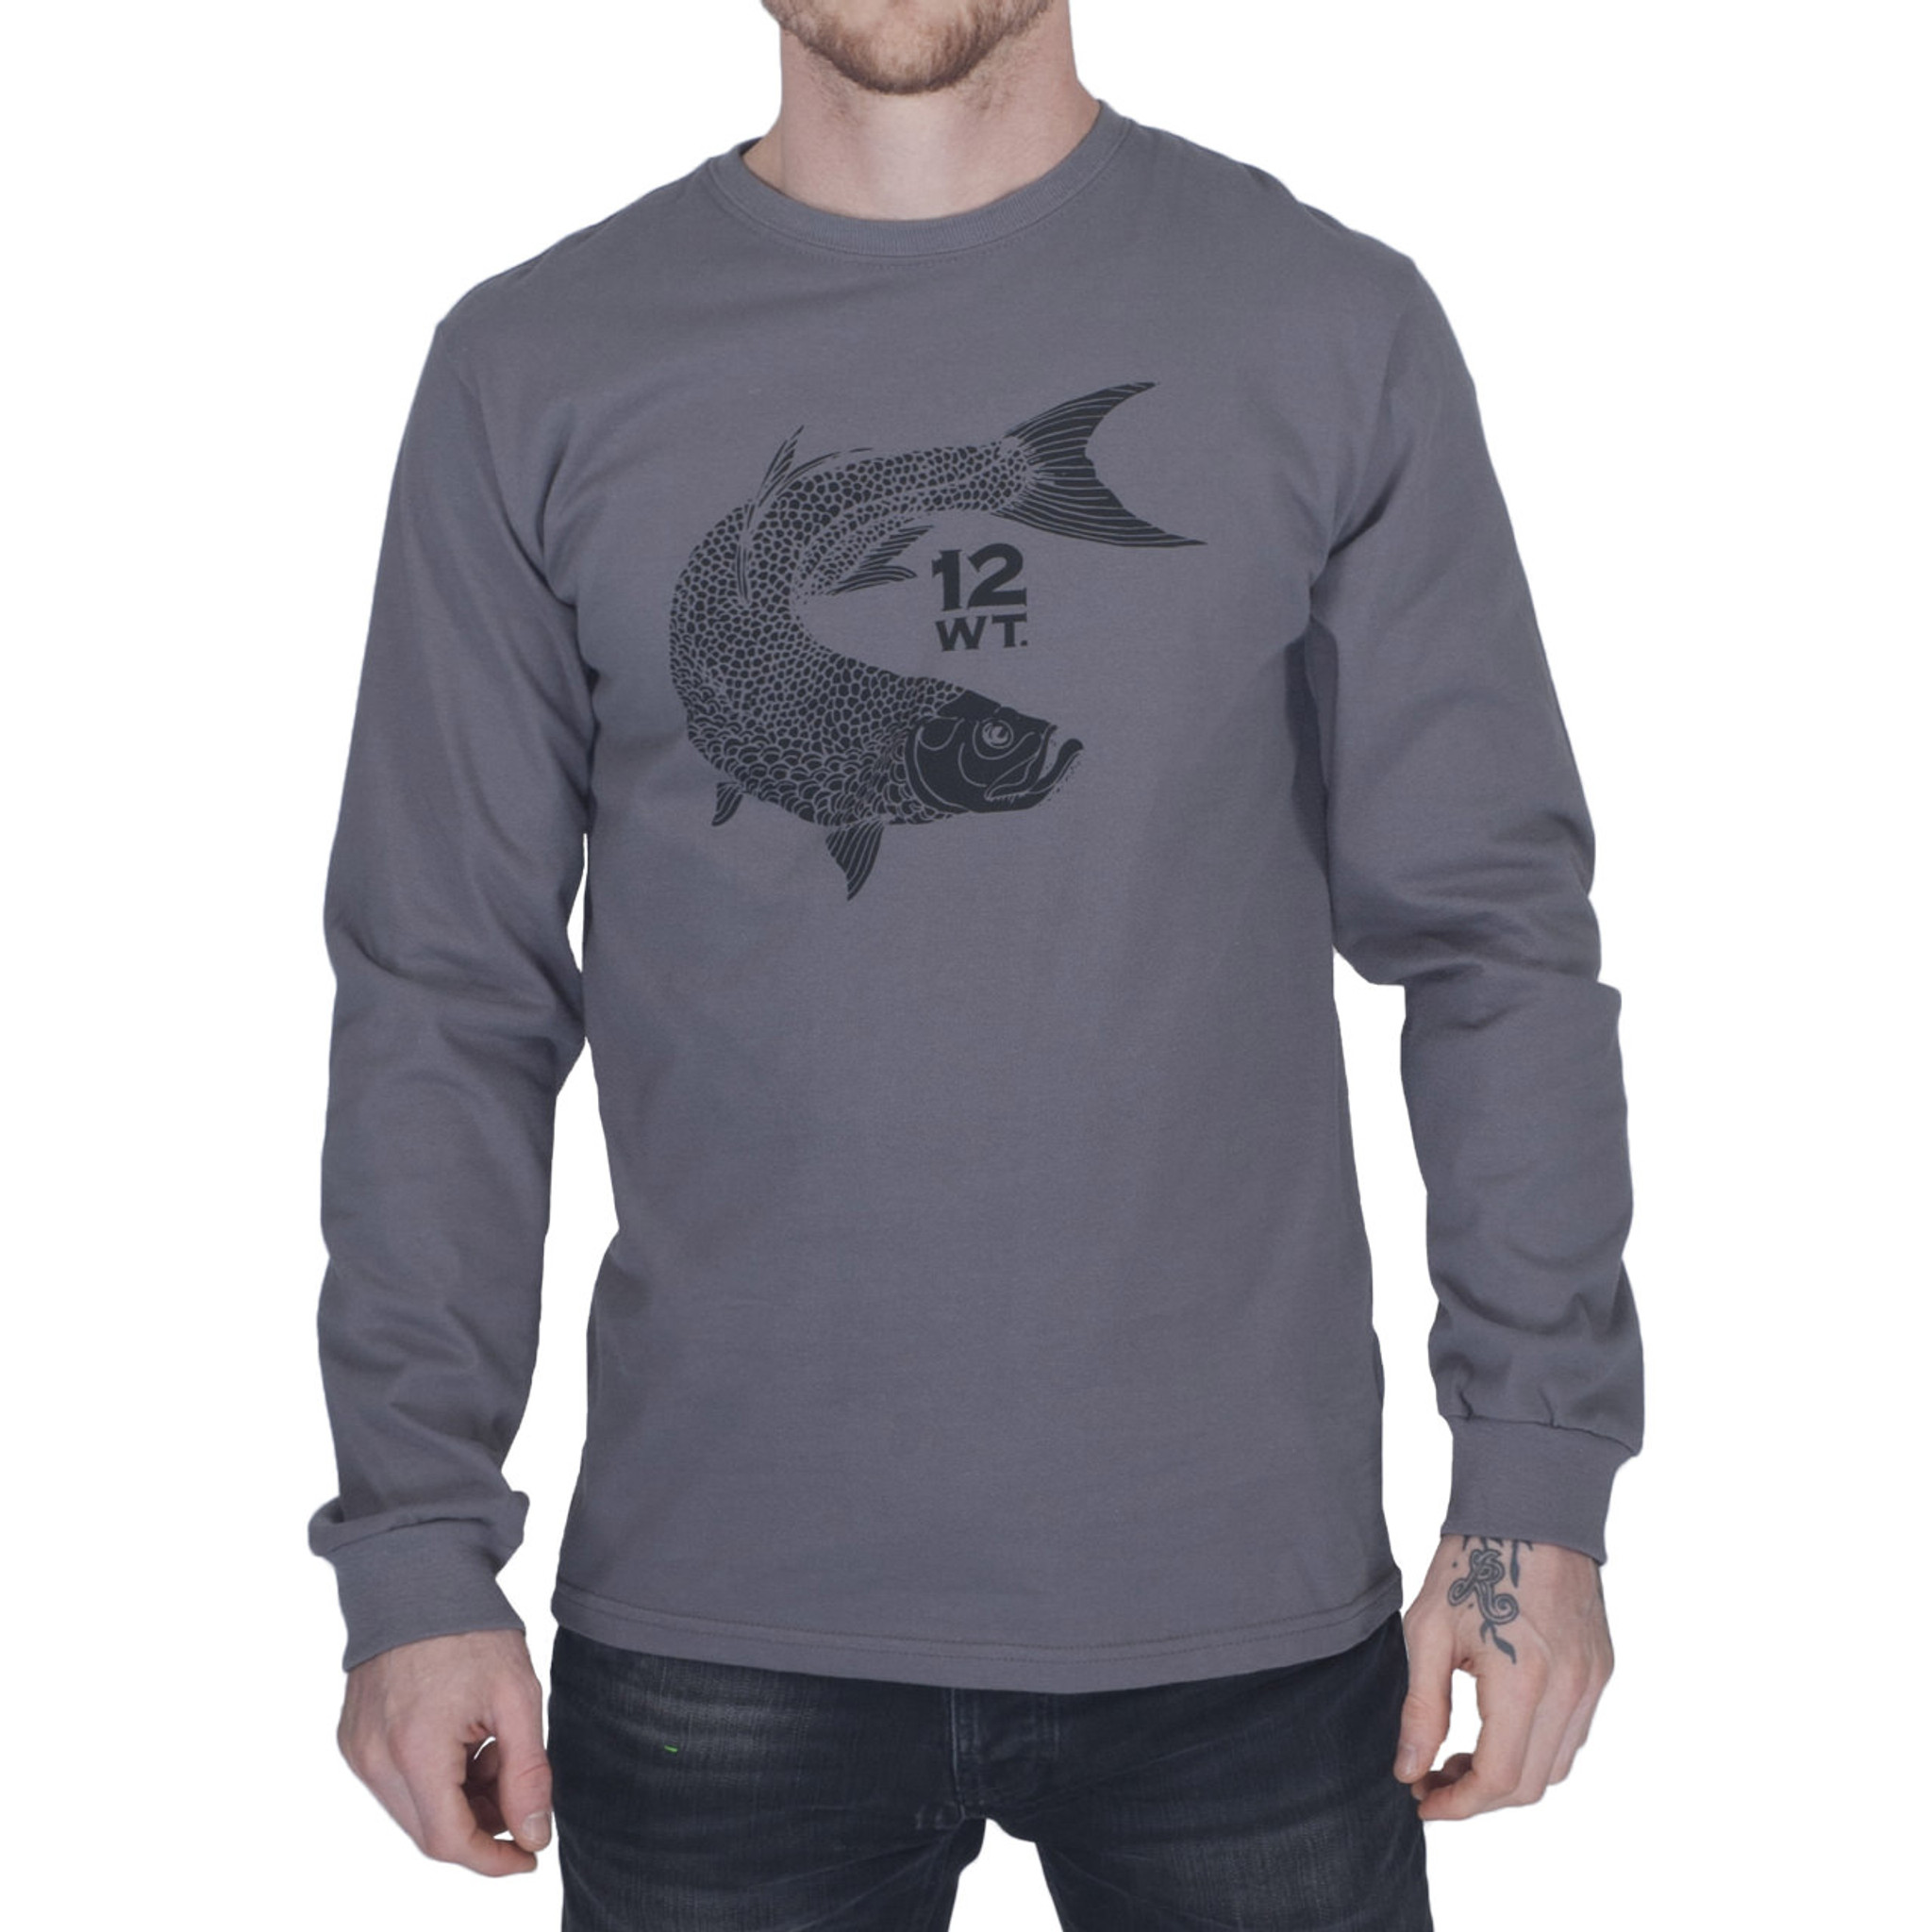 Mens long sleeve organic cotton t shirt with tarpon logo long sleeve t shirt tarpon logo nvjuhfo Images